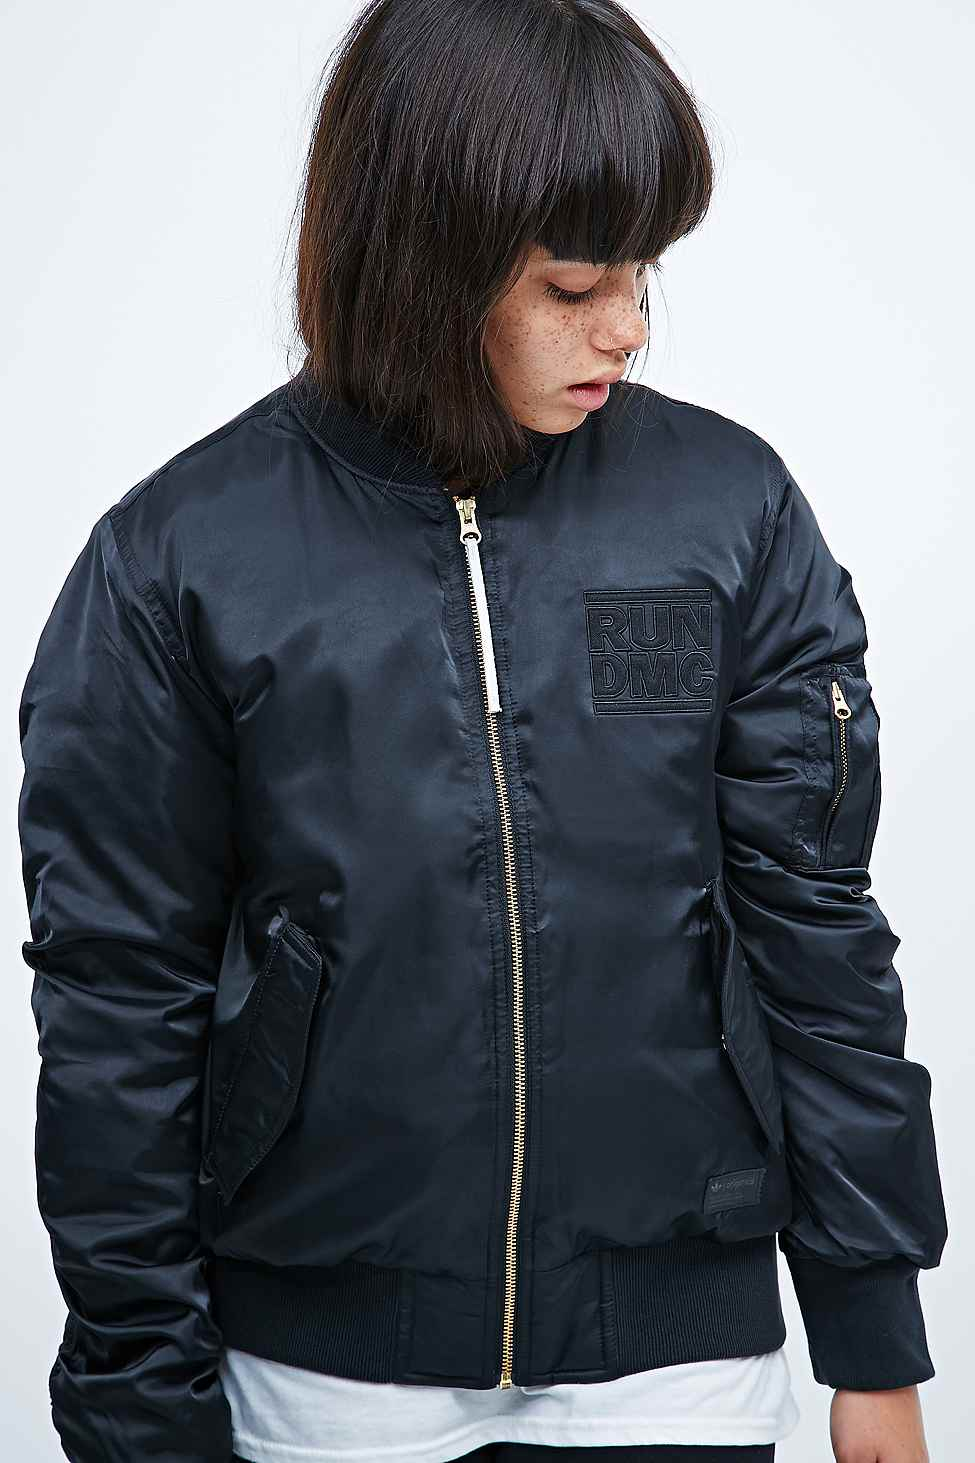 4336c75ef06a adidas Run Dmc Bomber Jacket In Black in Black - Lyst